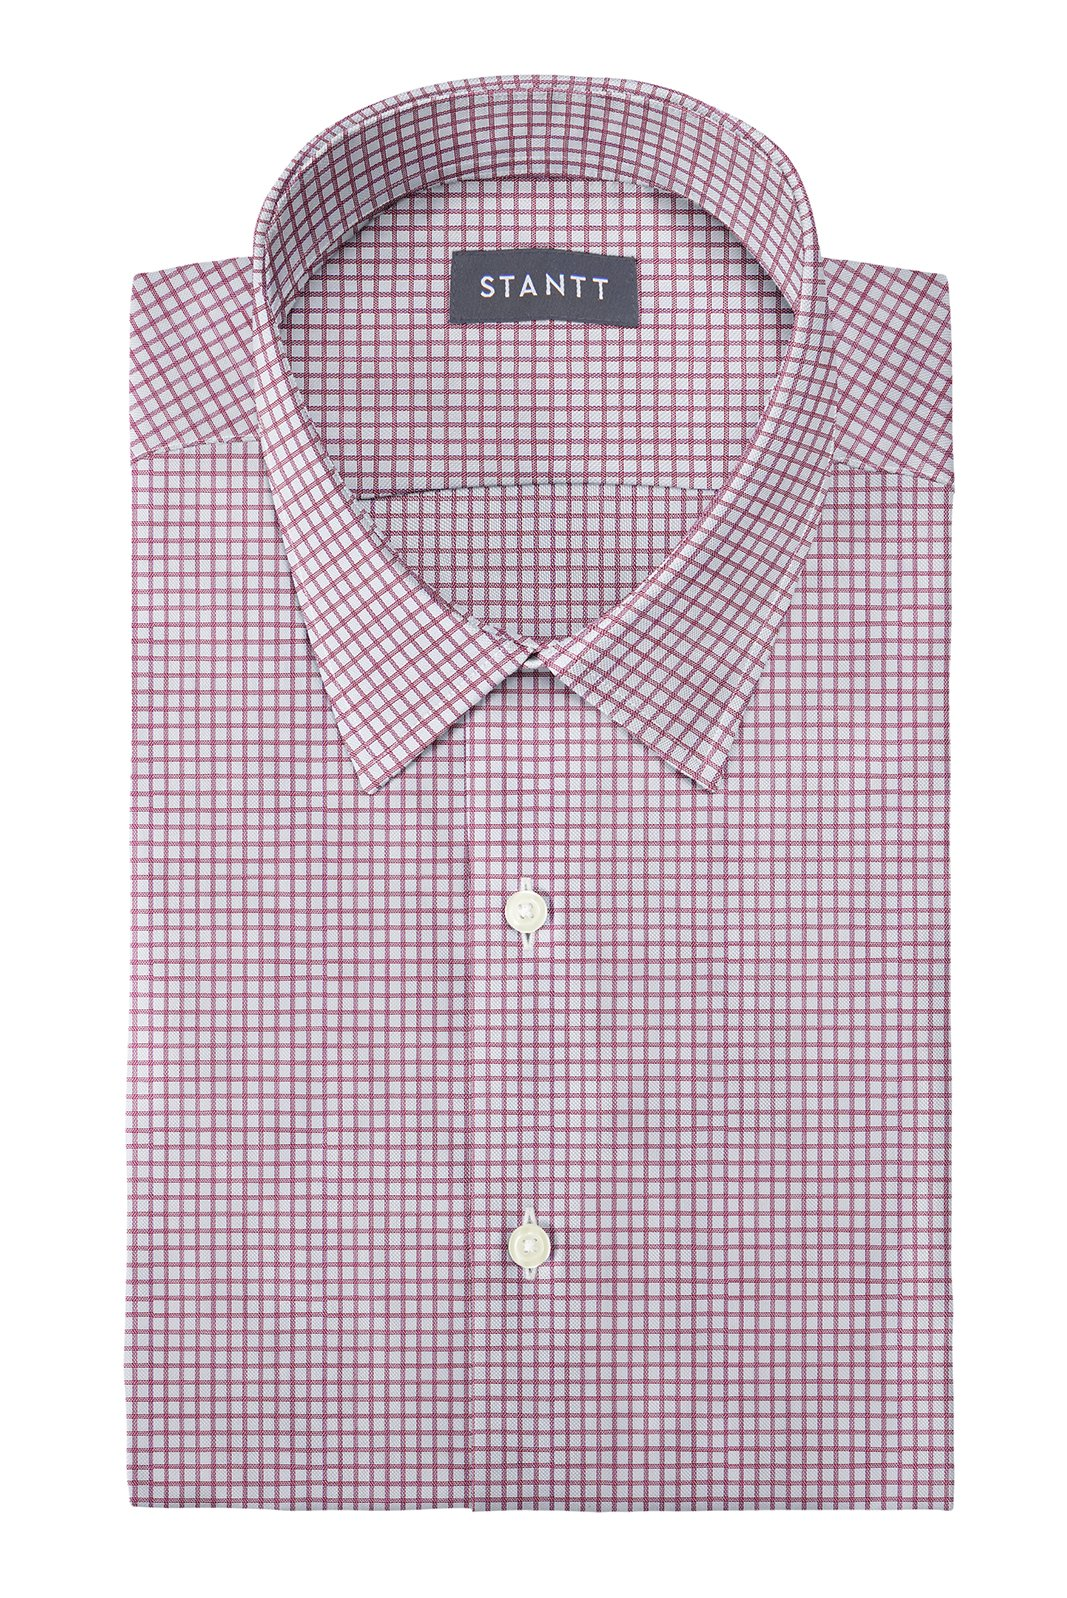 Wrinkle-Resistant Burgundy Dobby Check: Semi-Spread Collar, French Cuff